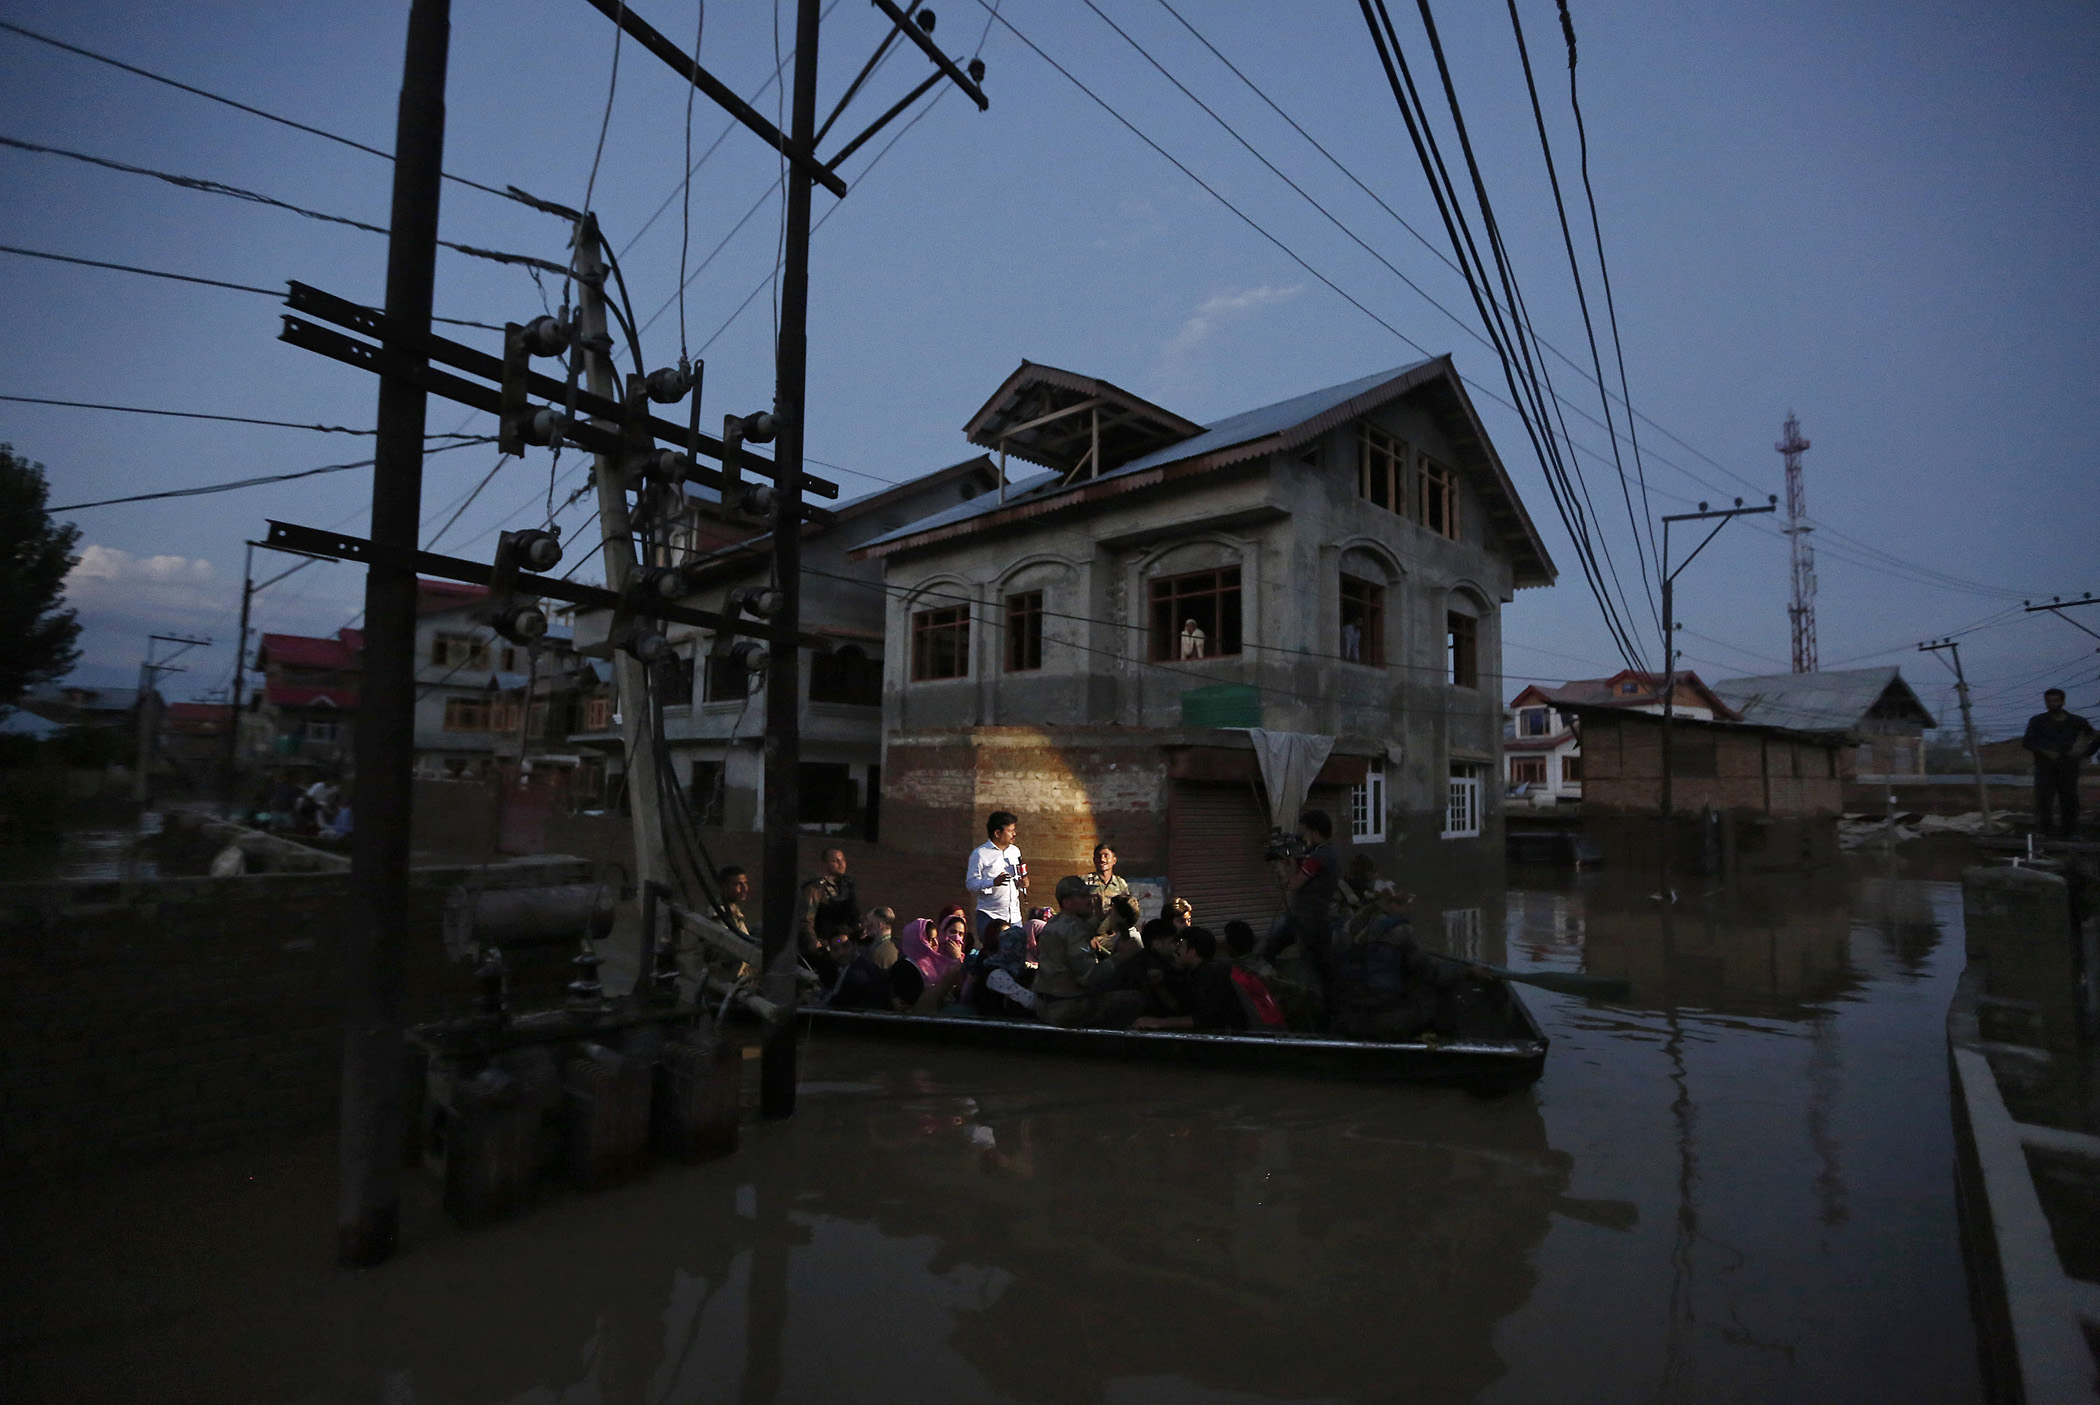 Flood victims are evacuated by boat from their flooded house in Srinagar, Sept. 10, 2014.